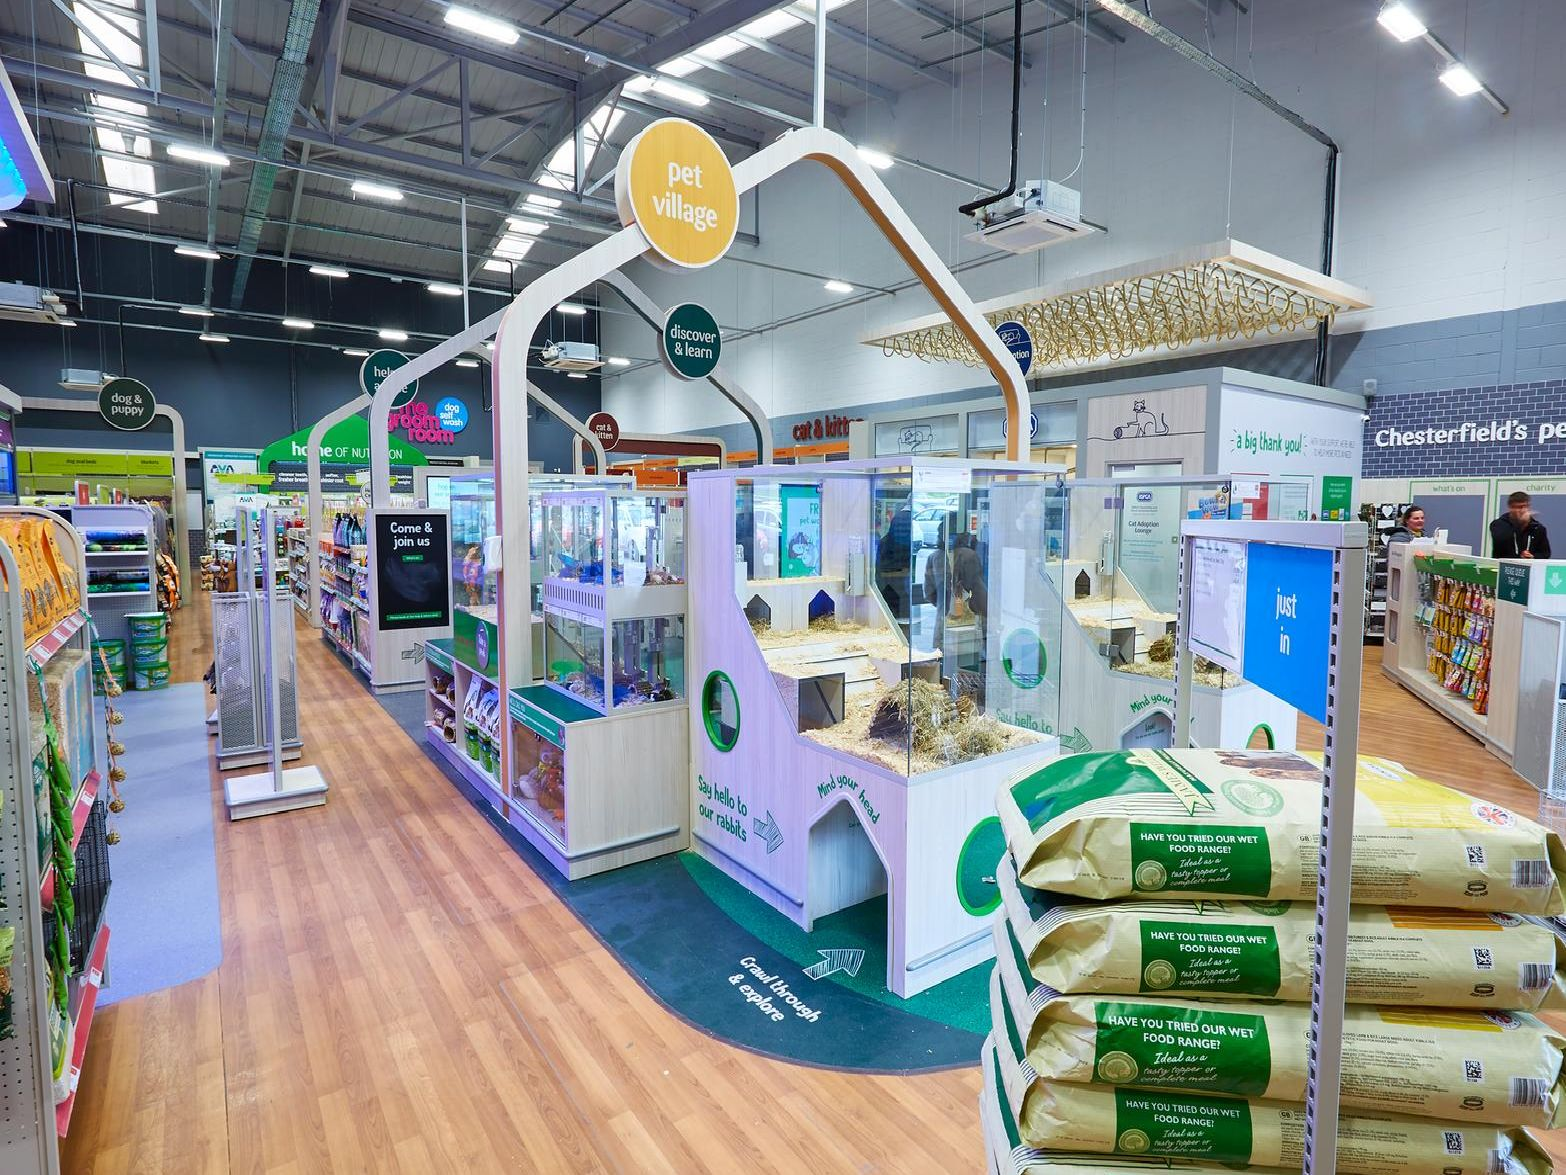 The Pet Village has been revamped with pets in mind to ensure there is plenty of room for them to play, hide, eat and sleep.